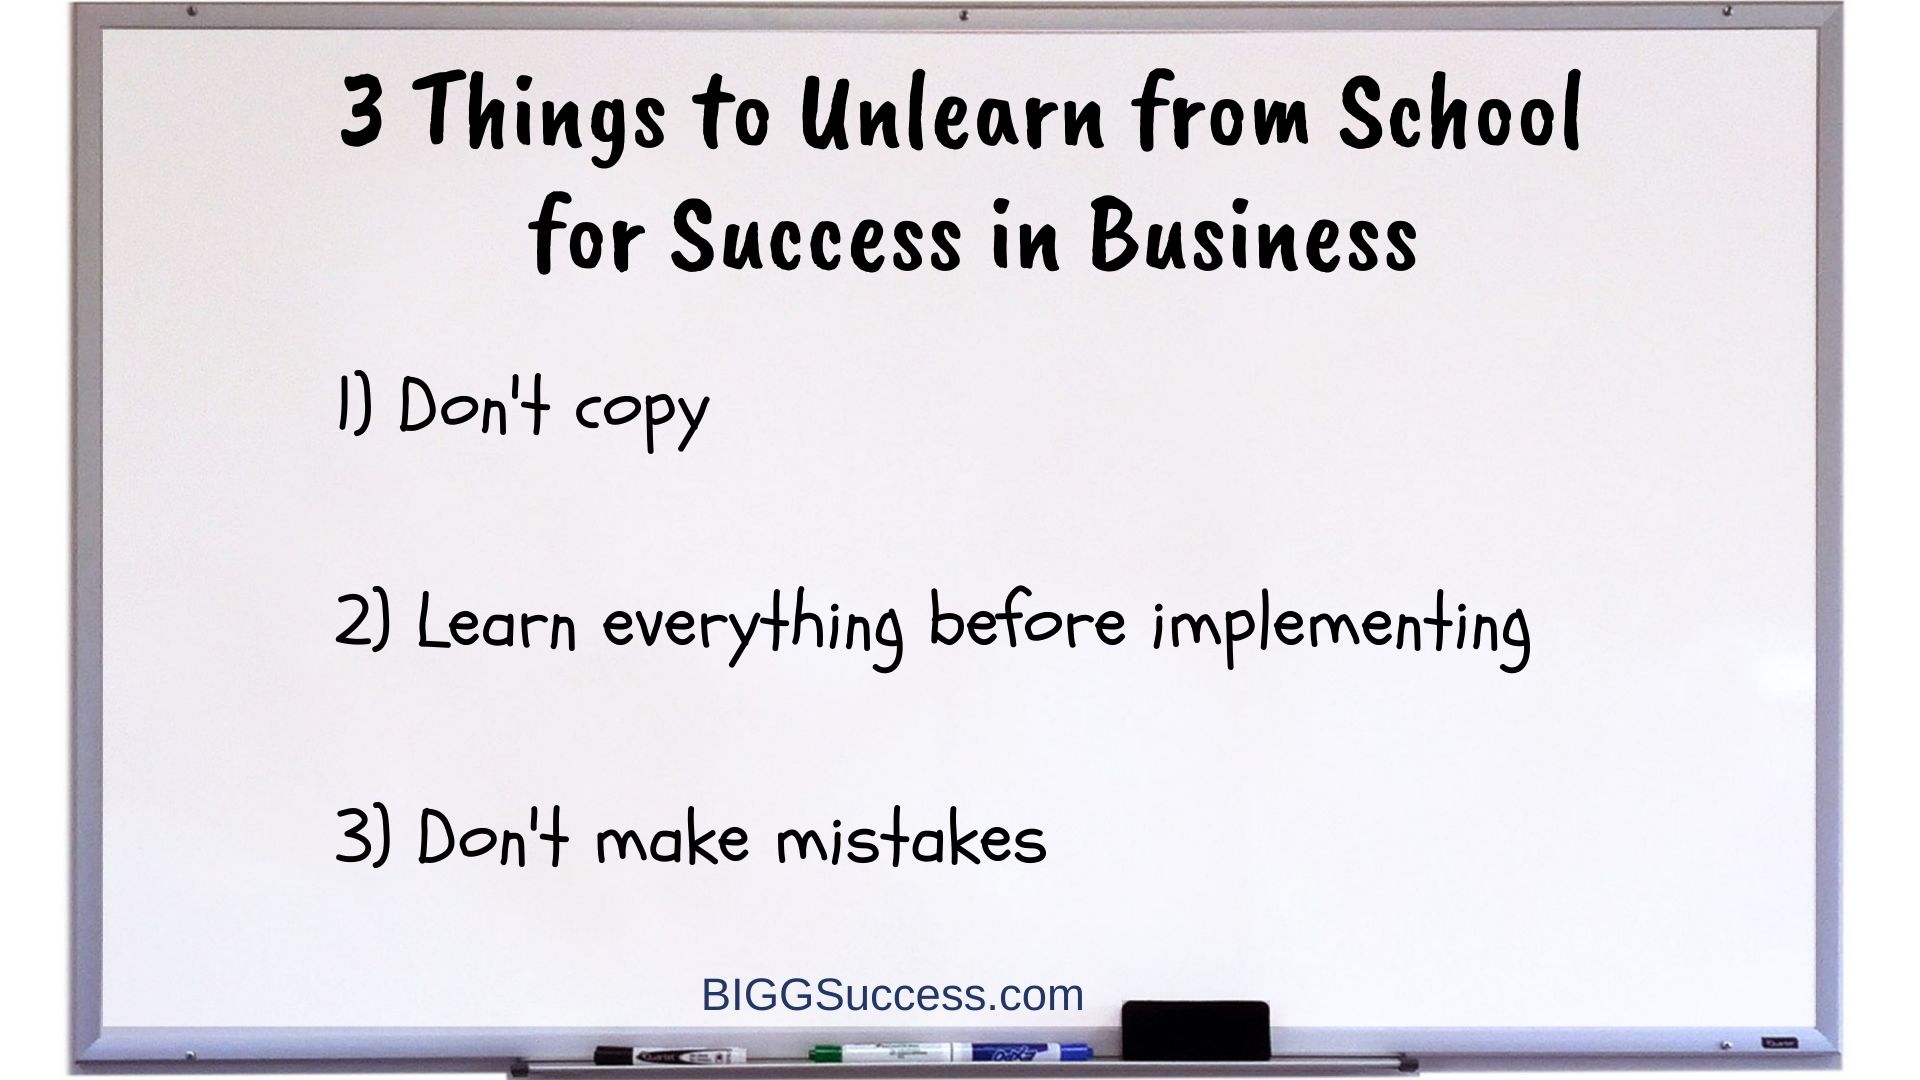 hiteboard 1070- 3 things to unlearn from school